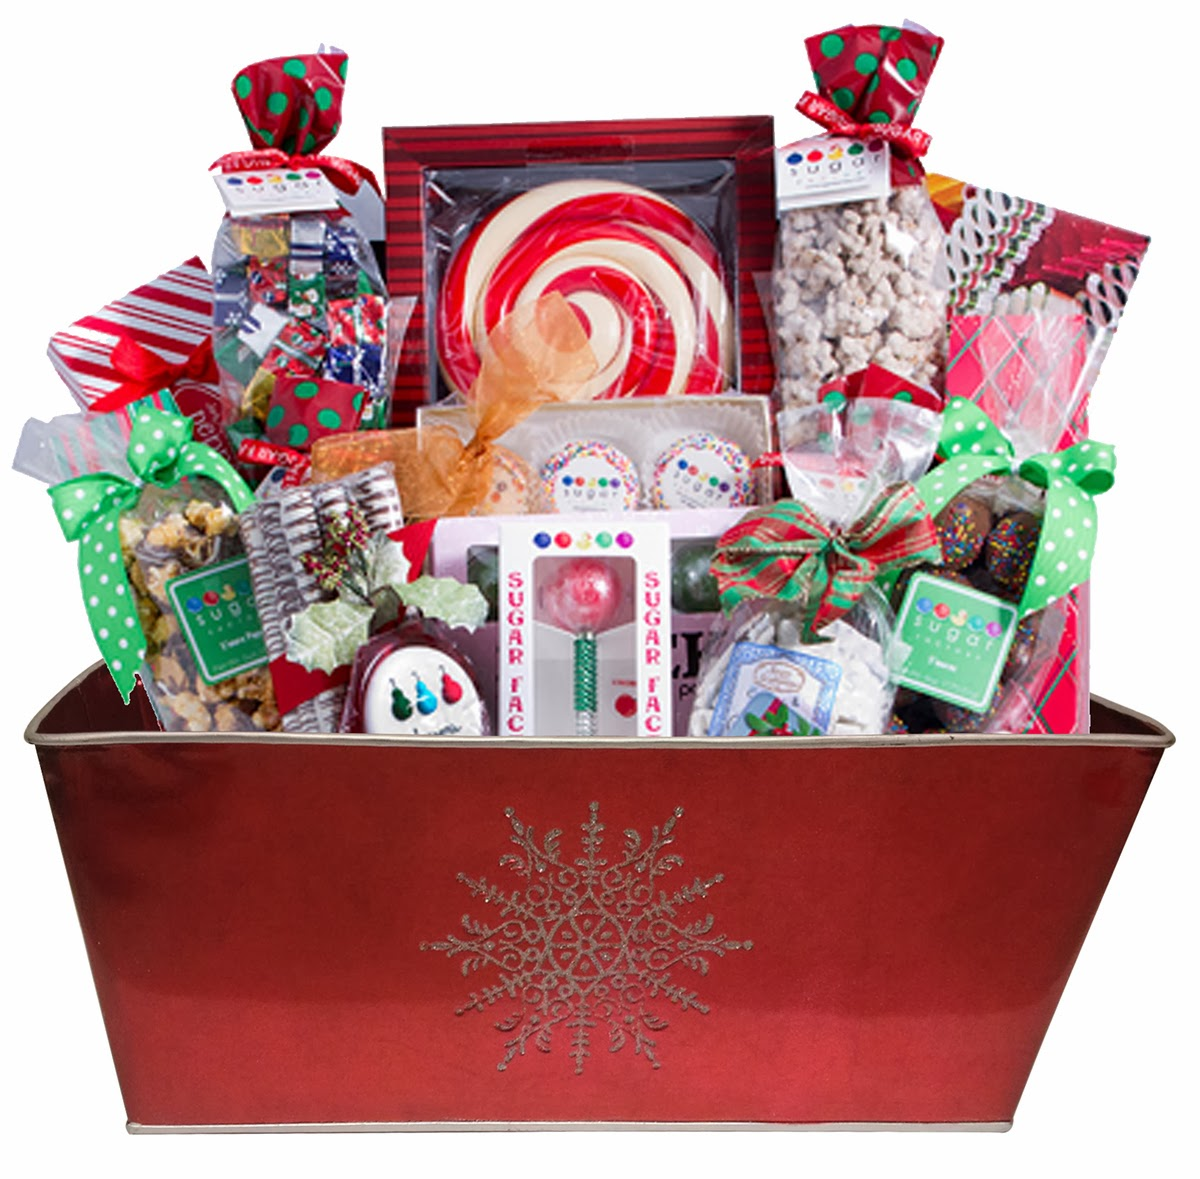 Themed Gift Baskets For Christmas: Themed christmas gift baskets for ...